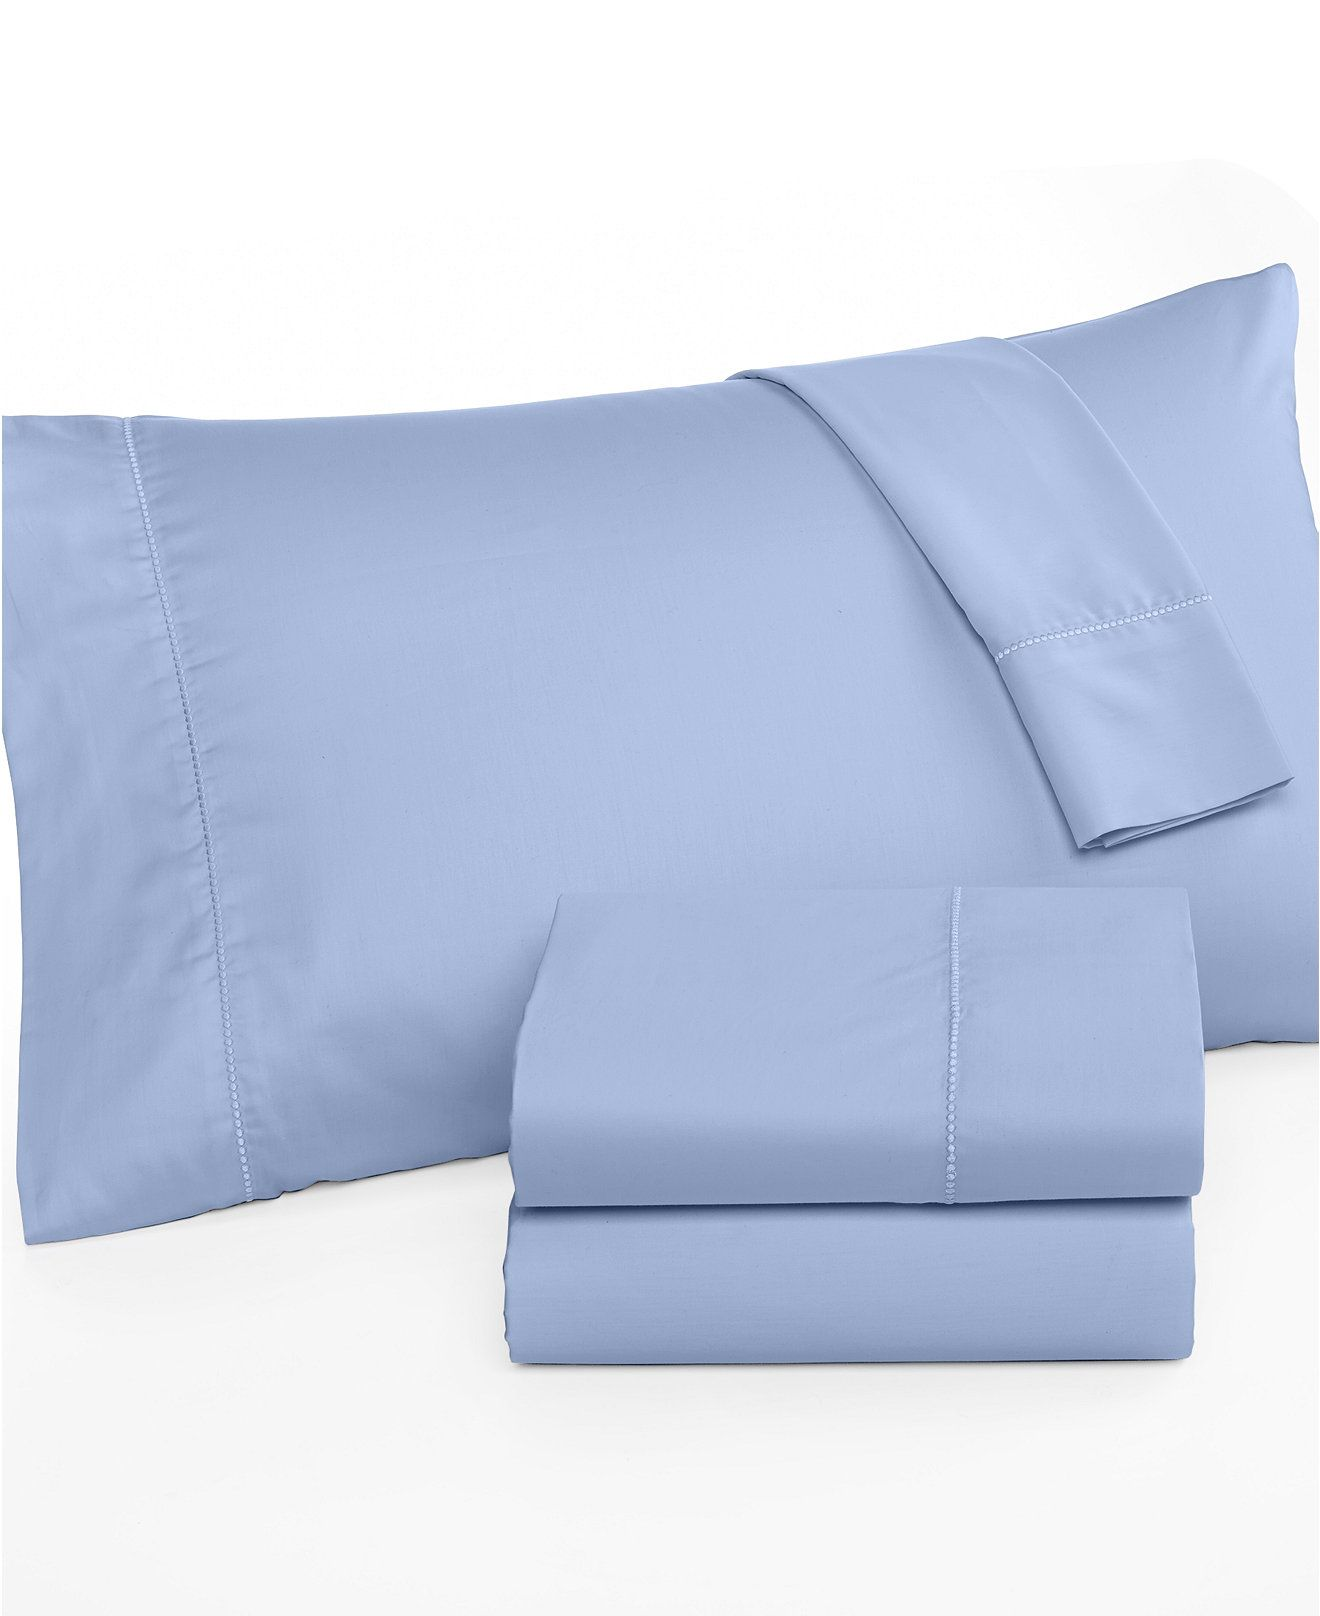 Martha Stewart Collection 300 Thread Count Cotton Twin XL Fitted